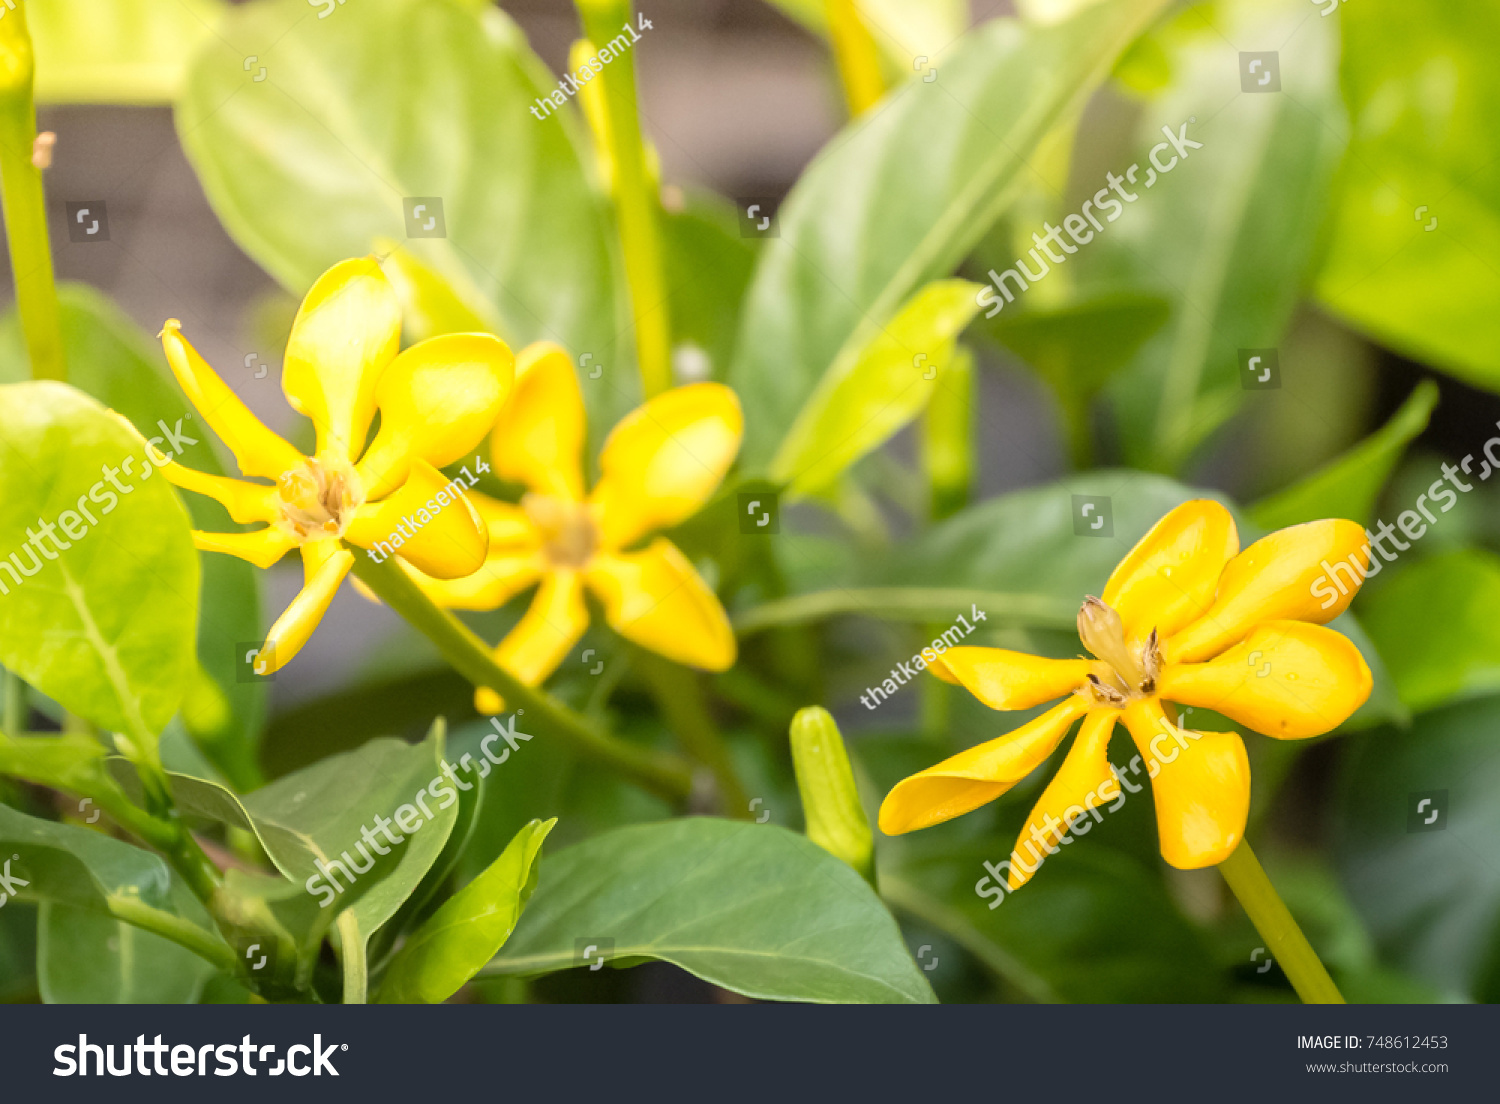 Yellow Flowers Blooming Green Leafs Name Stock Photo Edit Now